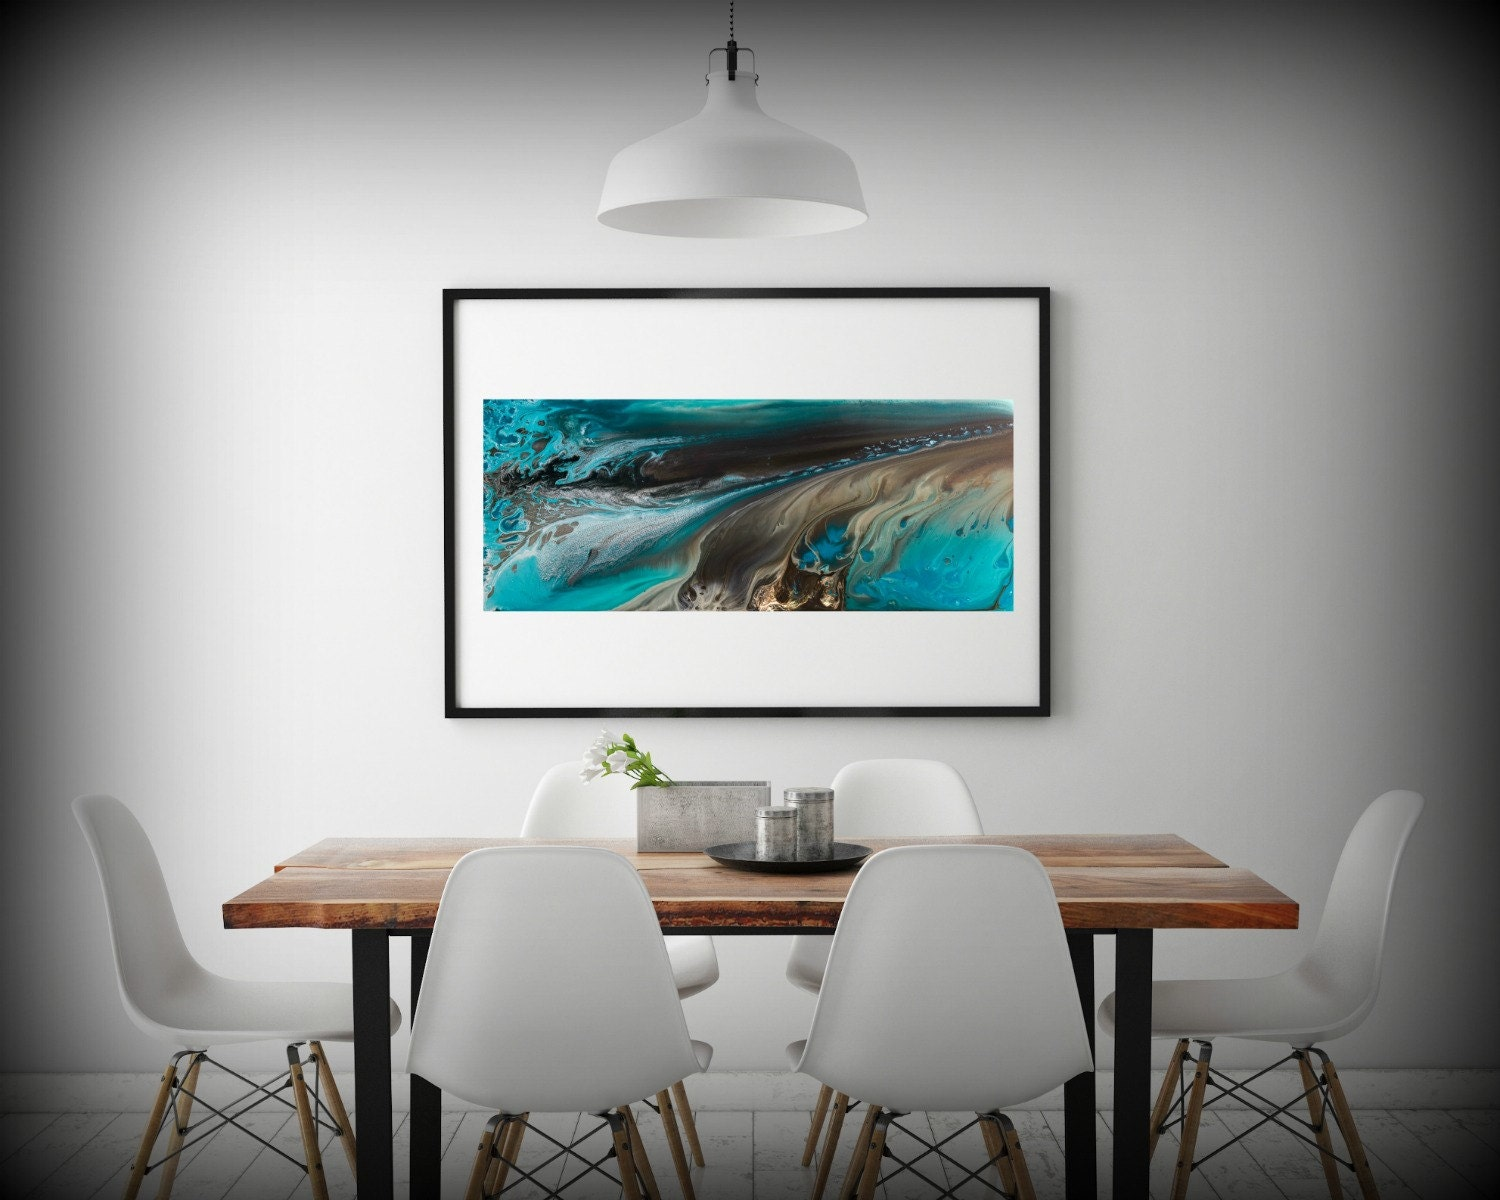 Coastal Wall Decor: GICLEE PRINTS Art Abstract Painting Coastal Home Decor